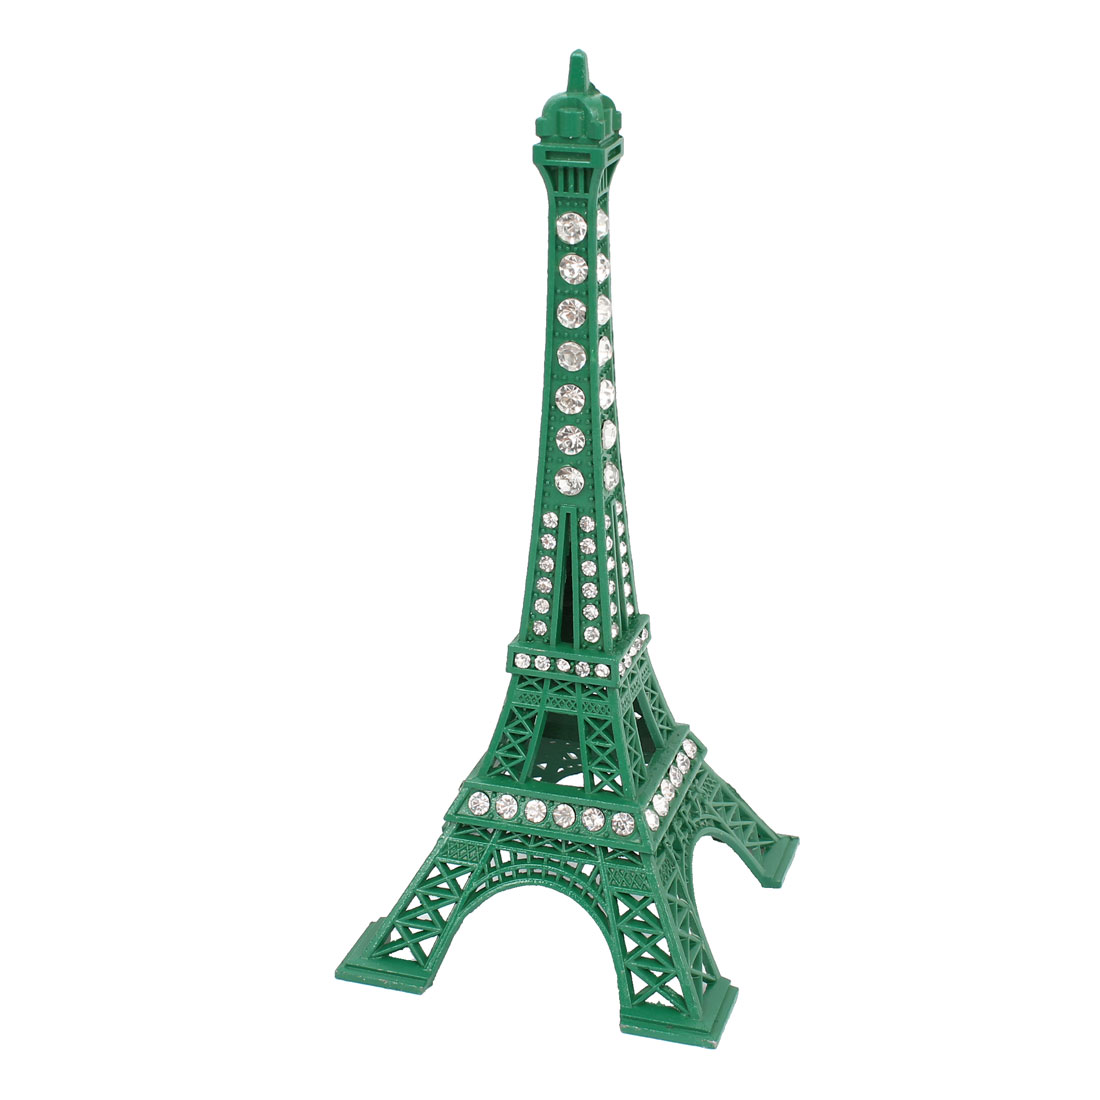 Rhinestone Detailing Mini Paris Eiffel Tower Metal Sculpture Model Green